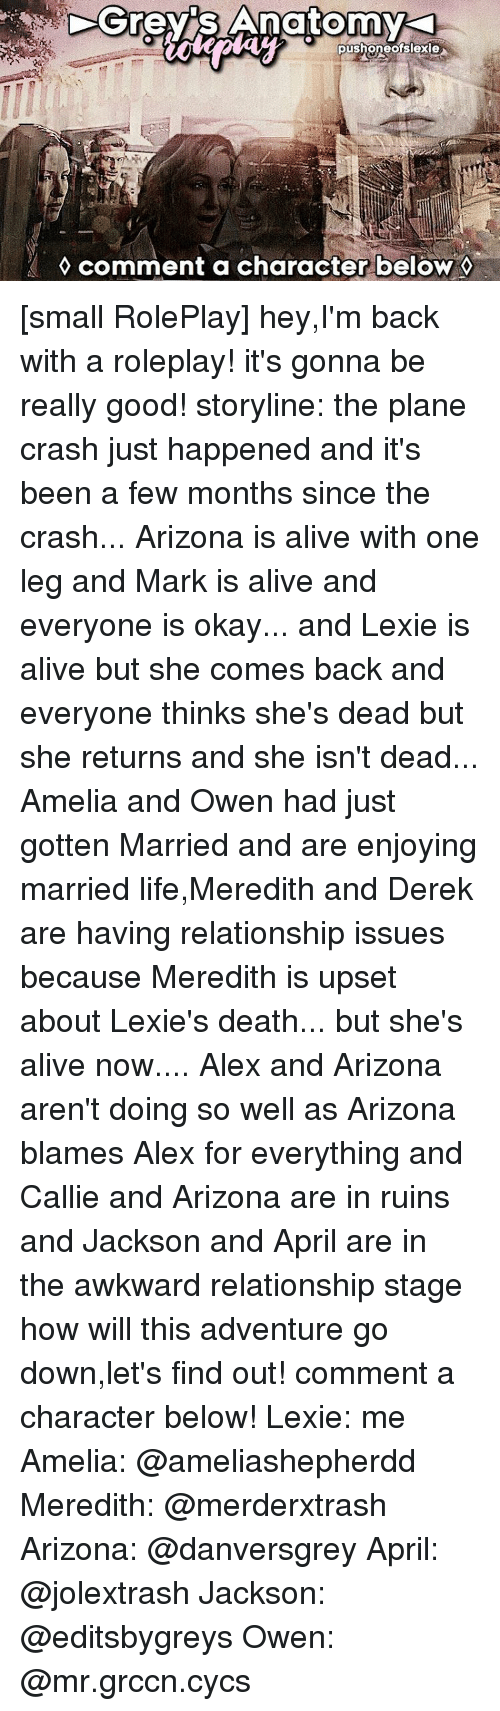 Grey Anatomy Pusheneoislexie Comment a Character Below Small ...